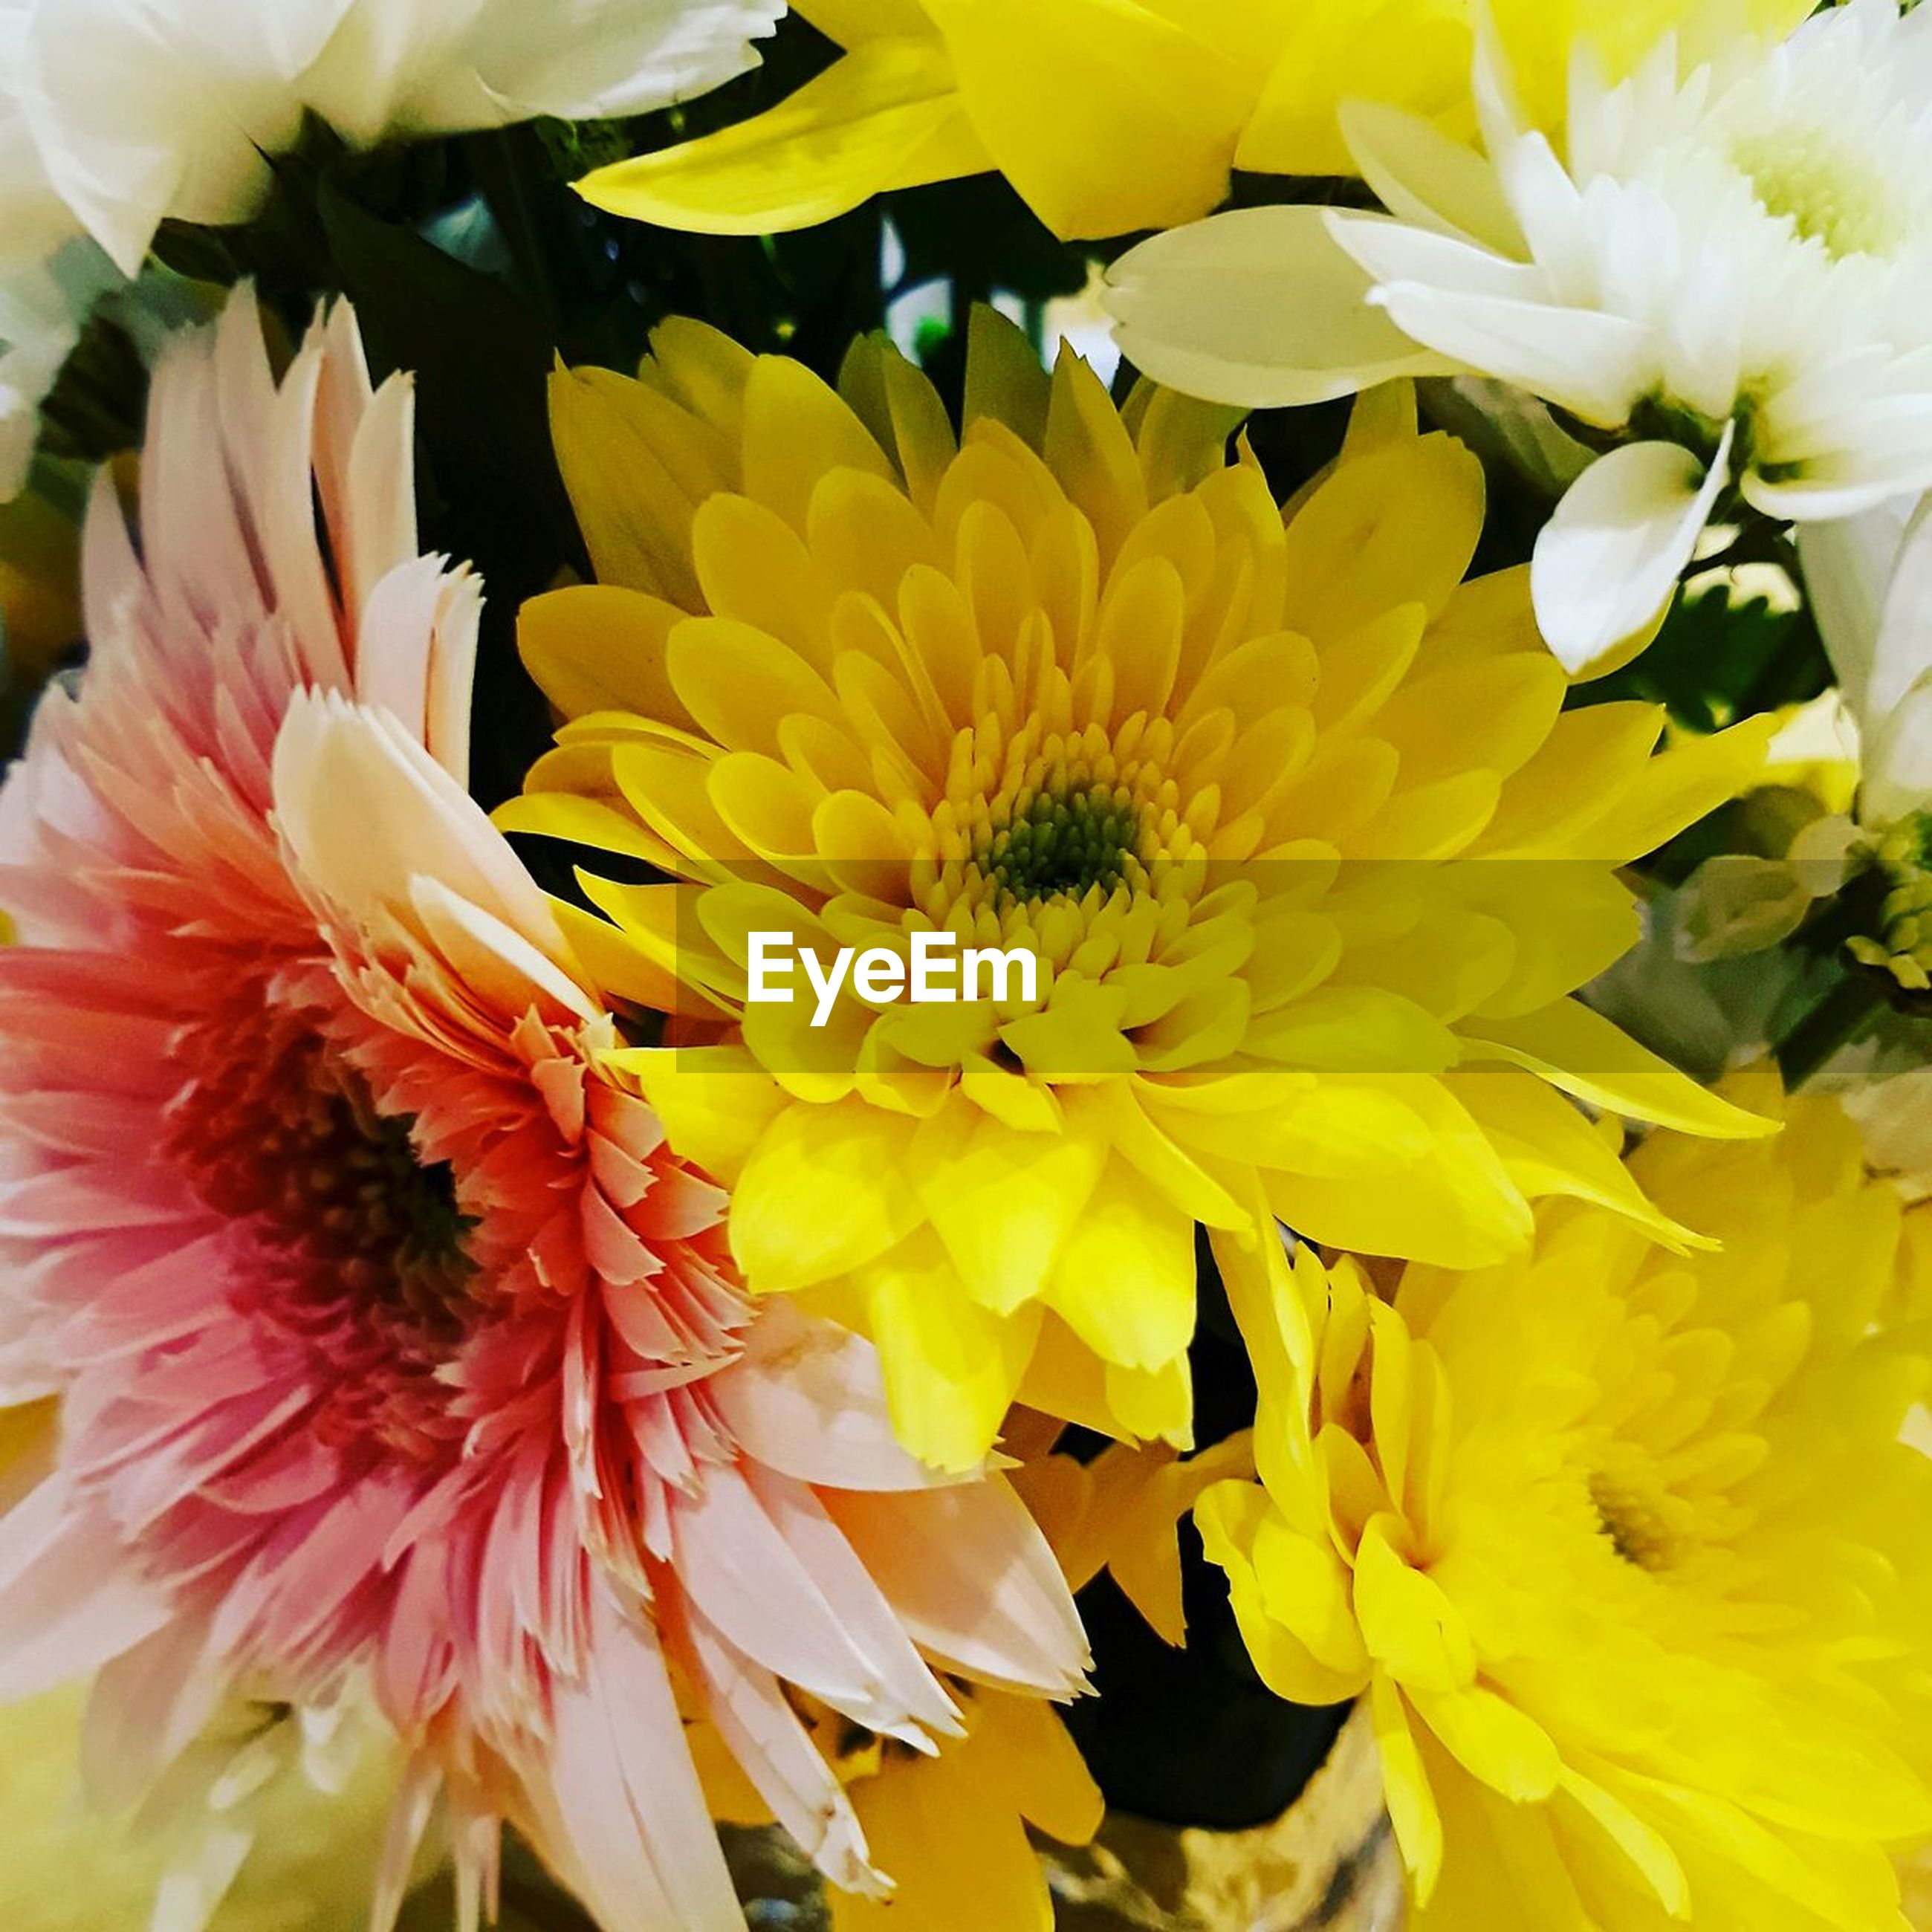 flowering plant, flower, petal, vulnerability, fragility, flower head, freshness, beauty in nature, inflorescence, plant, yellow, close-up, growth, nature, pollen, chrysanthemum, day, no people, outdoors, flower arrangement, bouquet, gazania